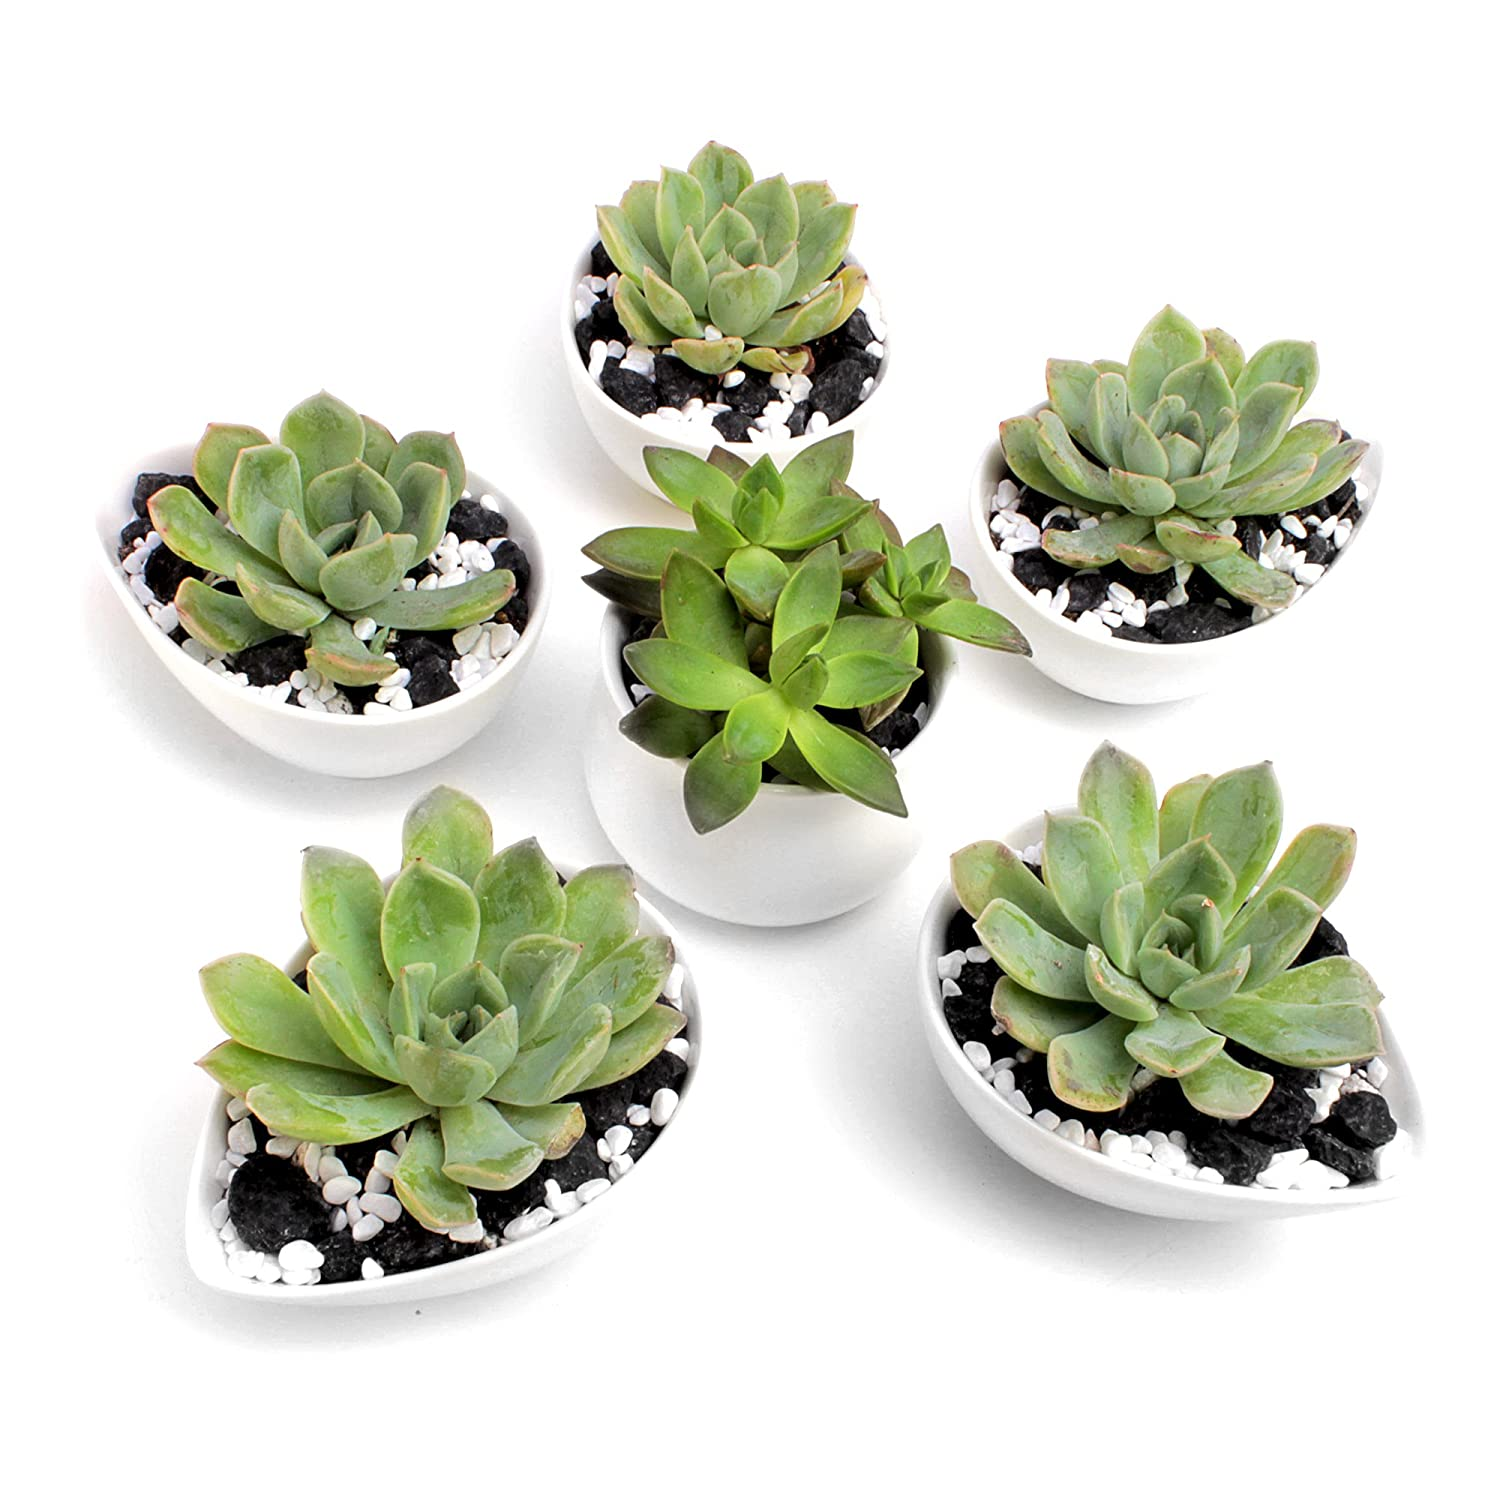 Succulent Planters   Set Of 6 Flower Shaped Combination Of 5pc Teardrop & 1pc Round Shaped, White, Mini, Ceramic Pots For Succulents, Mini Cactus & Other Small Plants. by Cozy Home Essentials